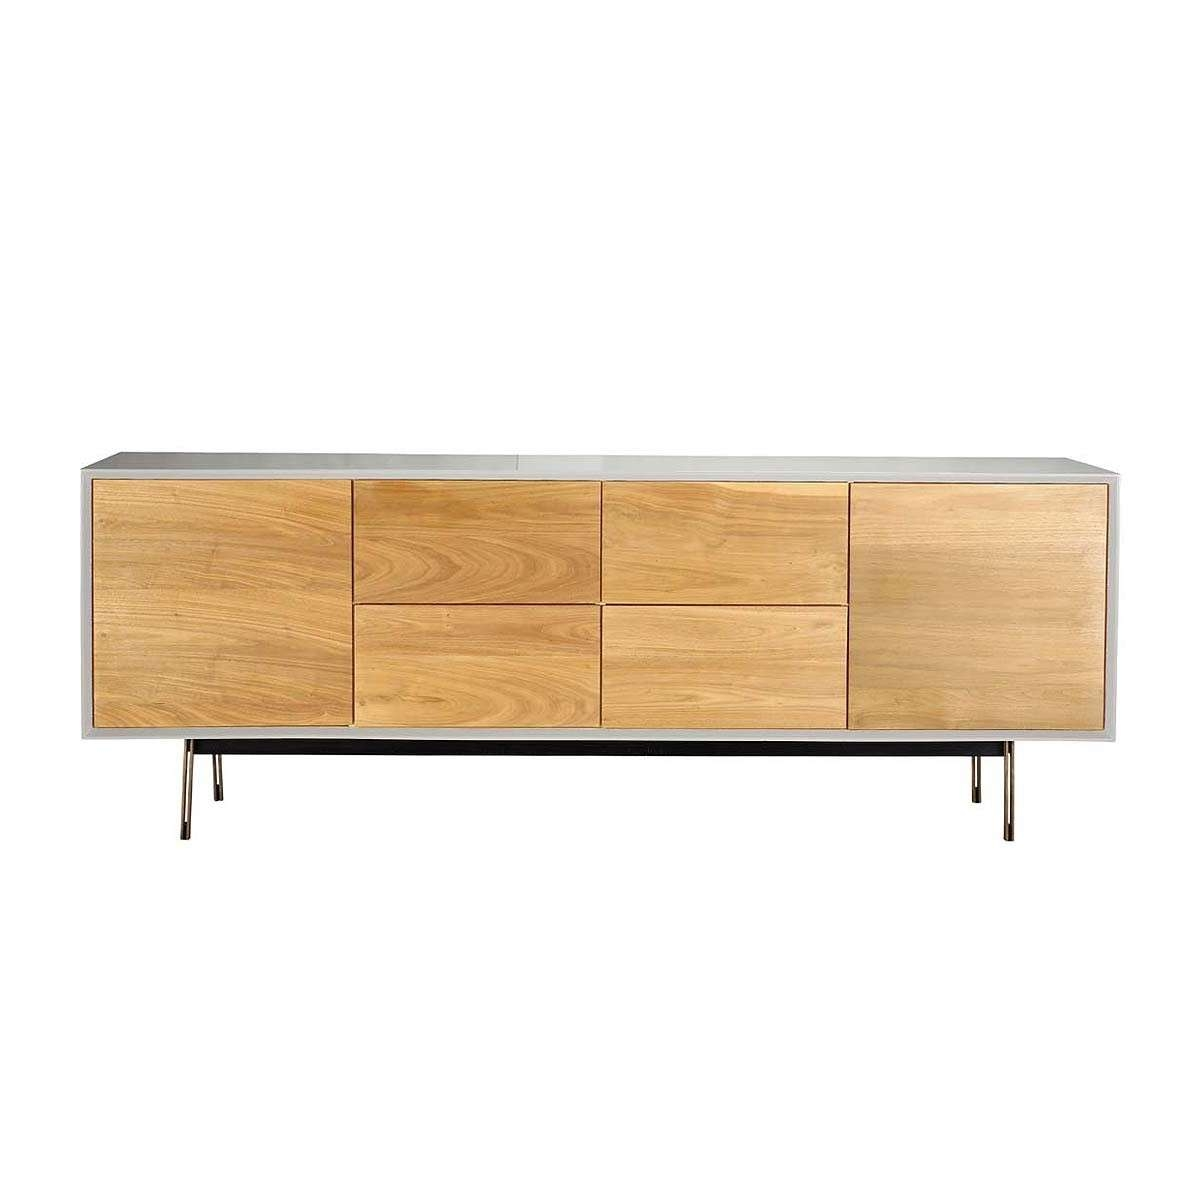 Organic Modernism – Valencia Buffet Sideboard (Beech, White Pertaining To Beech Sideboards (Gallery 6 of 20)